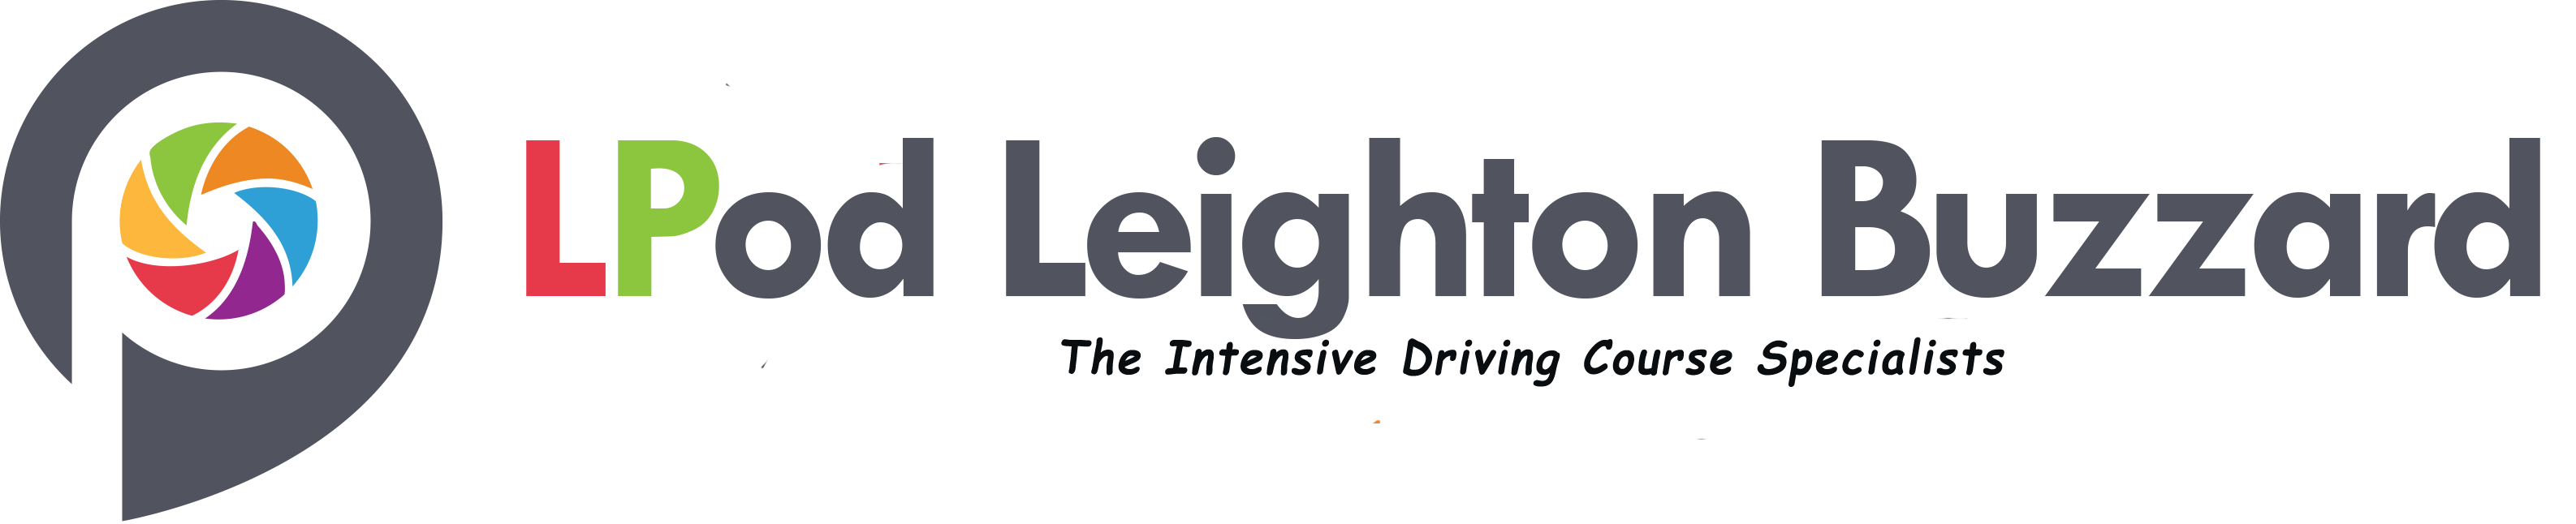 intensive driving courses leighton buzzard, intensive driving lessons leighton buzzard